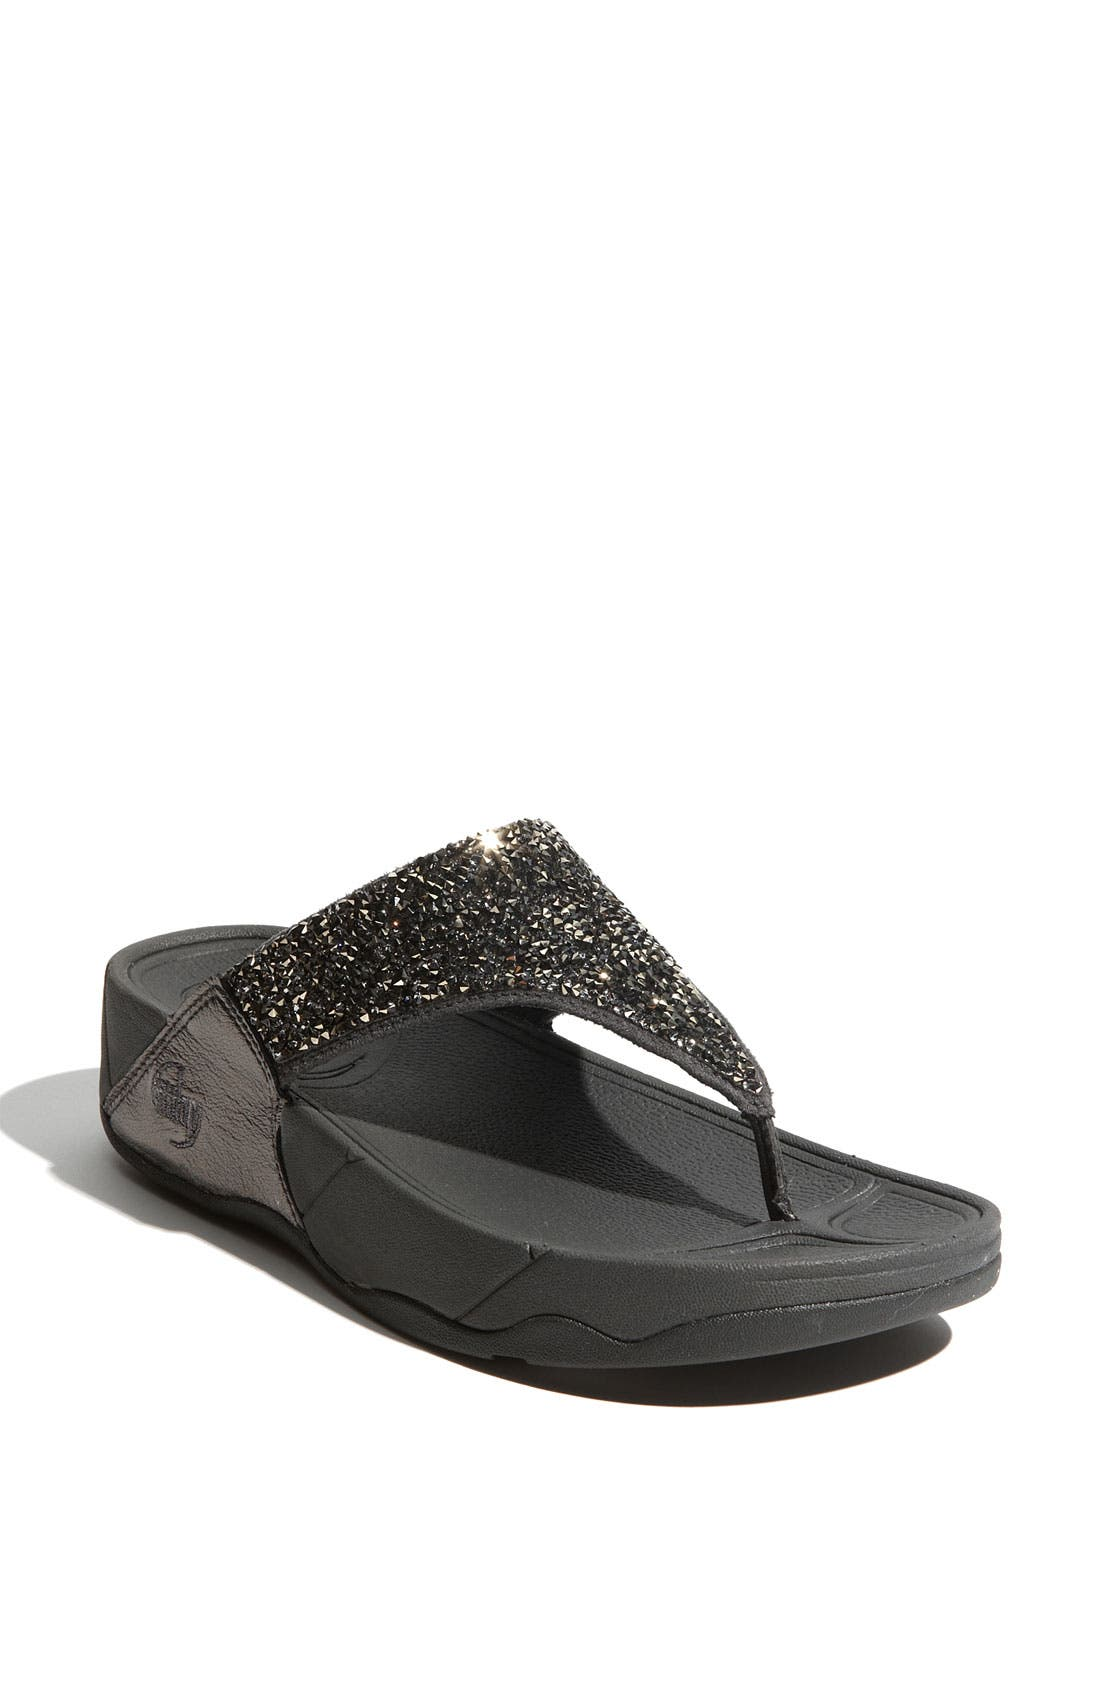 Main Image - FitFlop 'Rock Chic™' Sandal